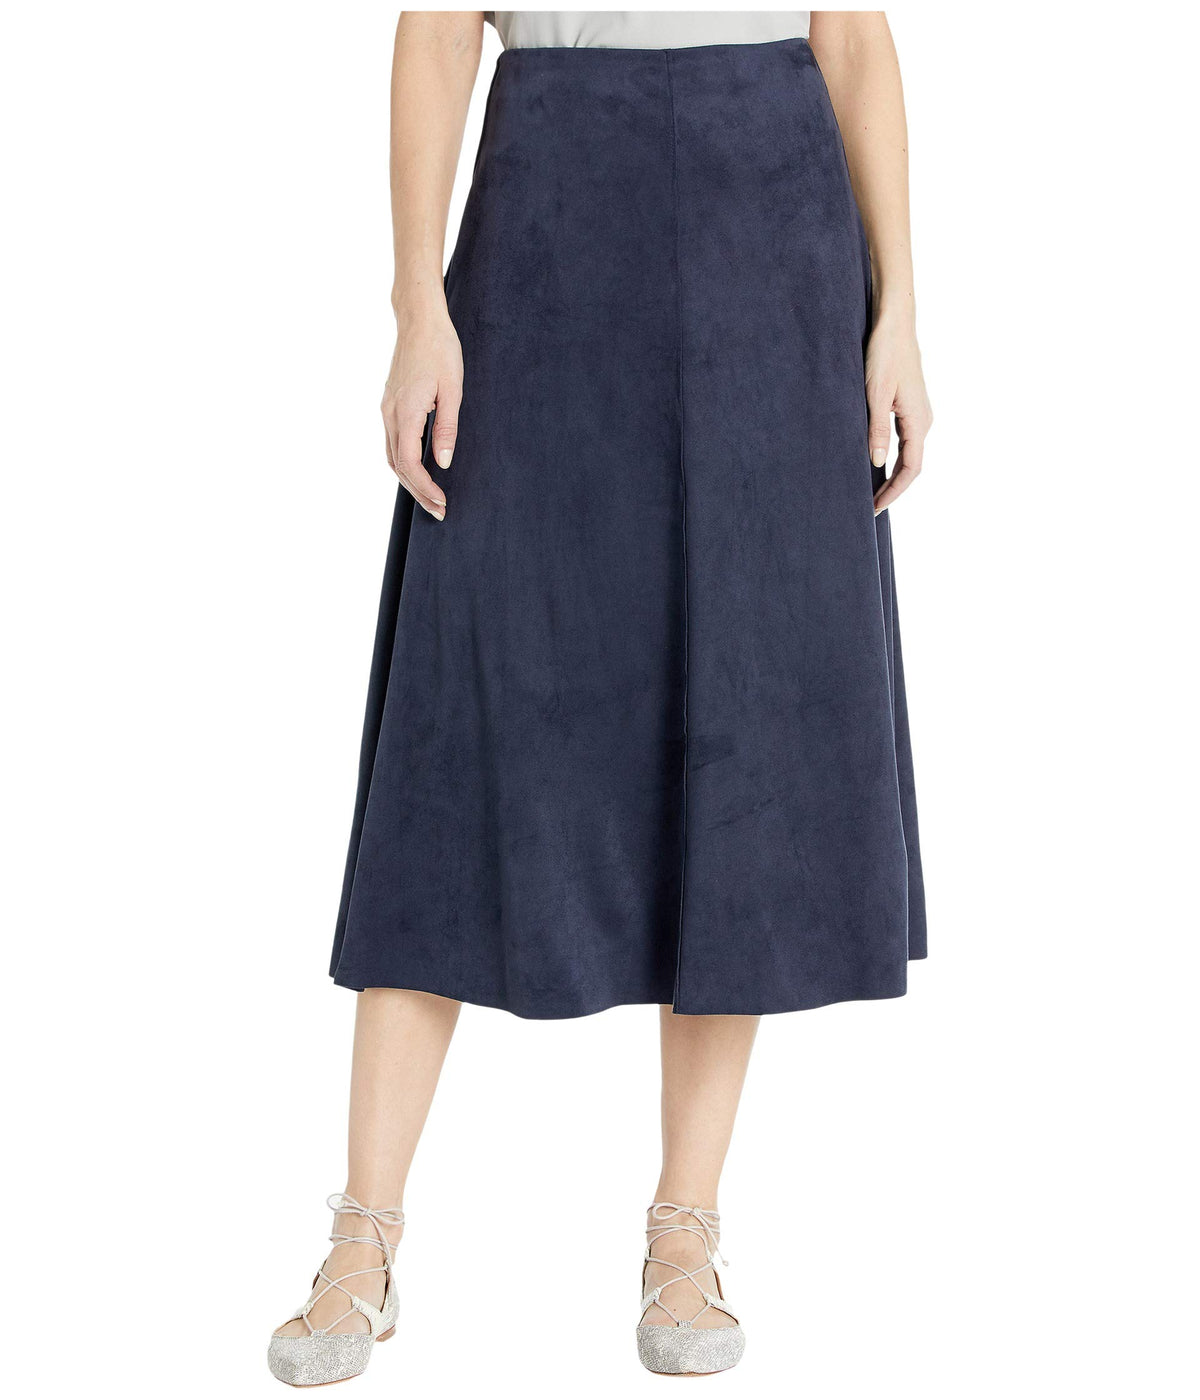 Dock Skirt in Summer Vegan Suede